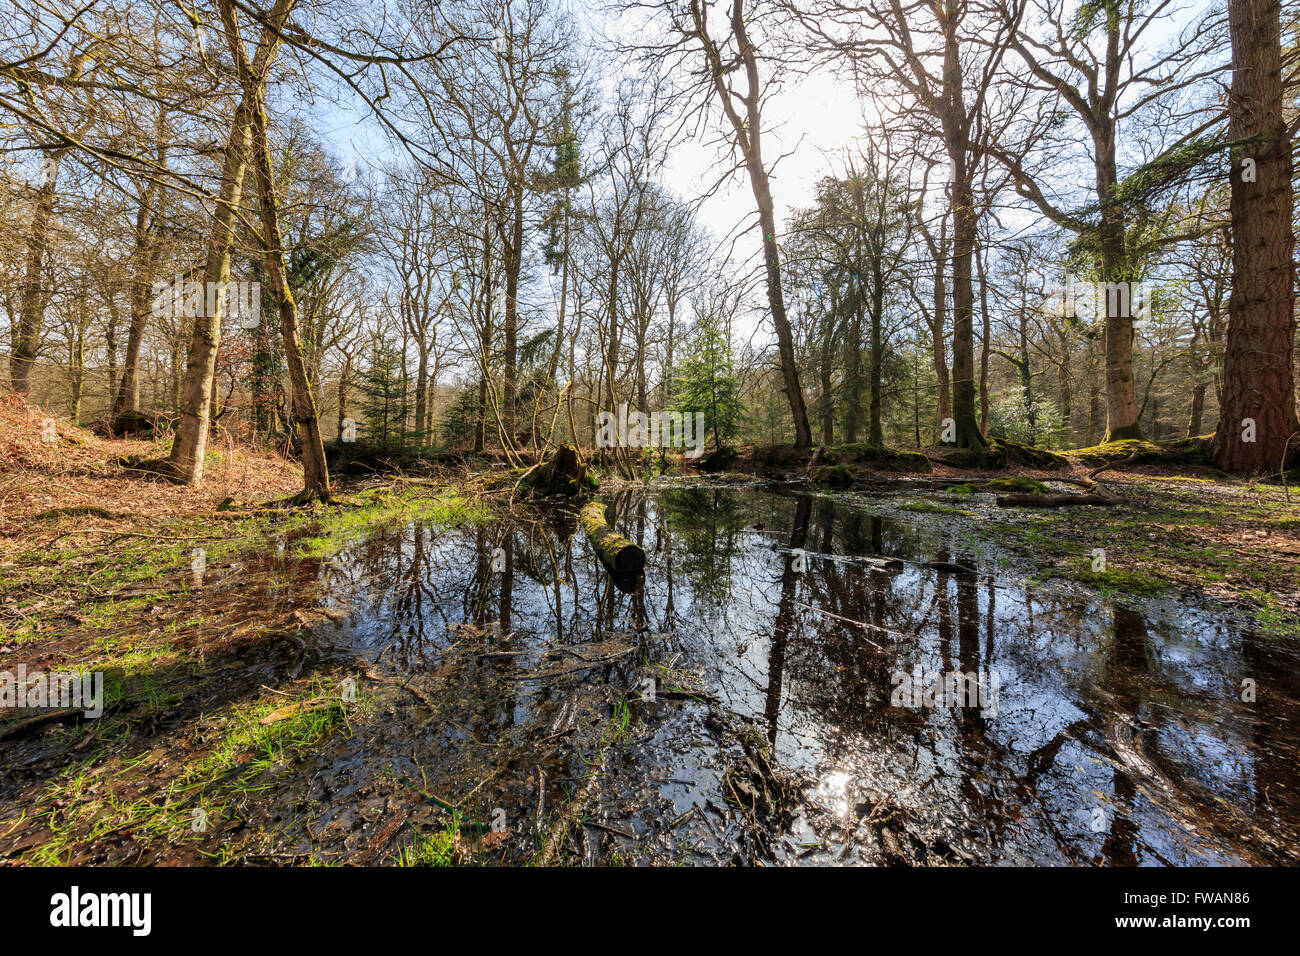 Blackwater with good reflection at New Forest National Park, UK - Stock Image